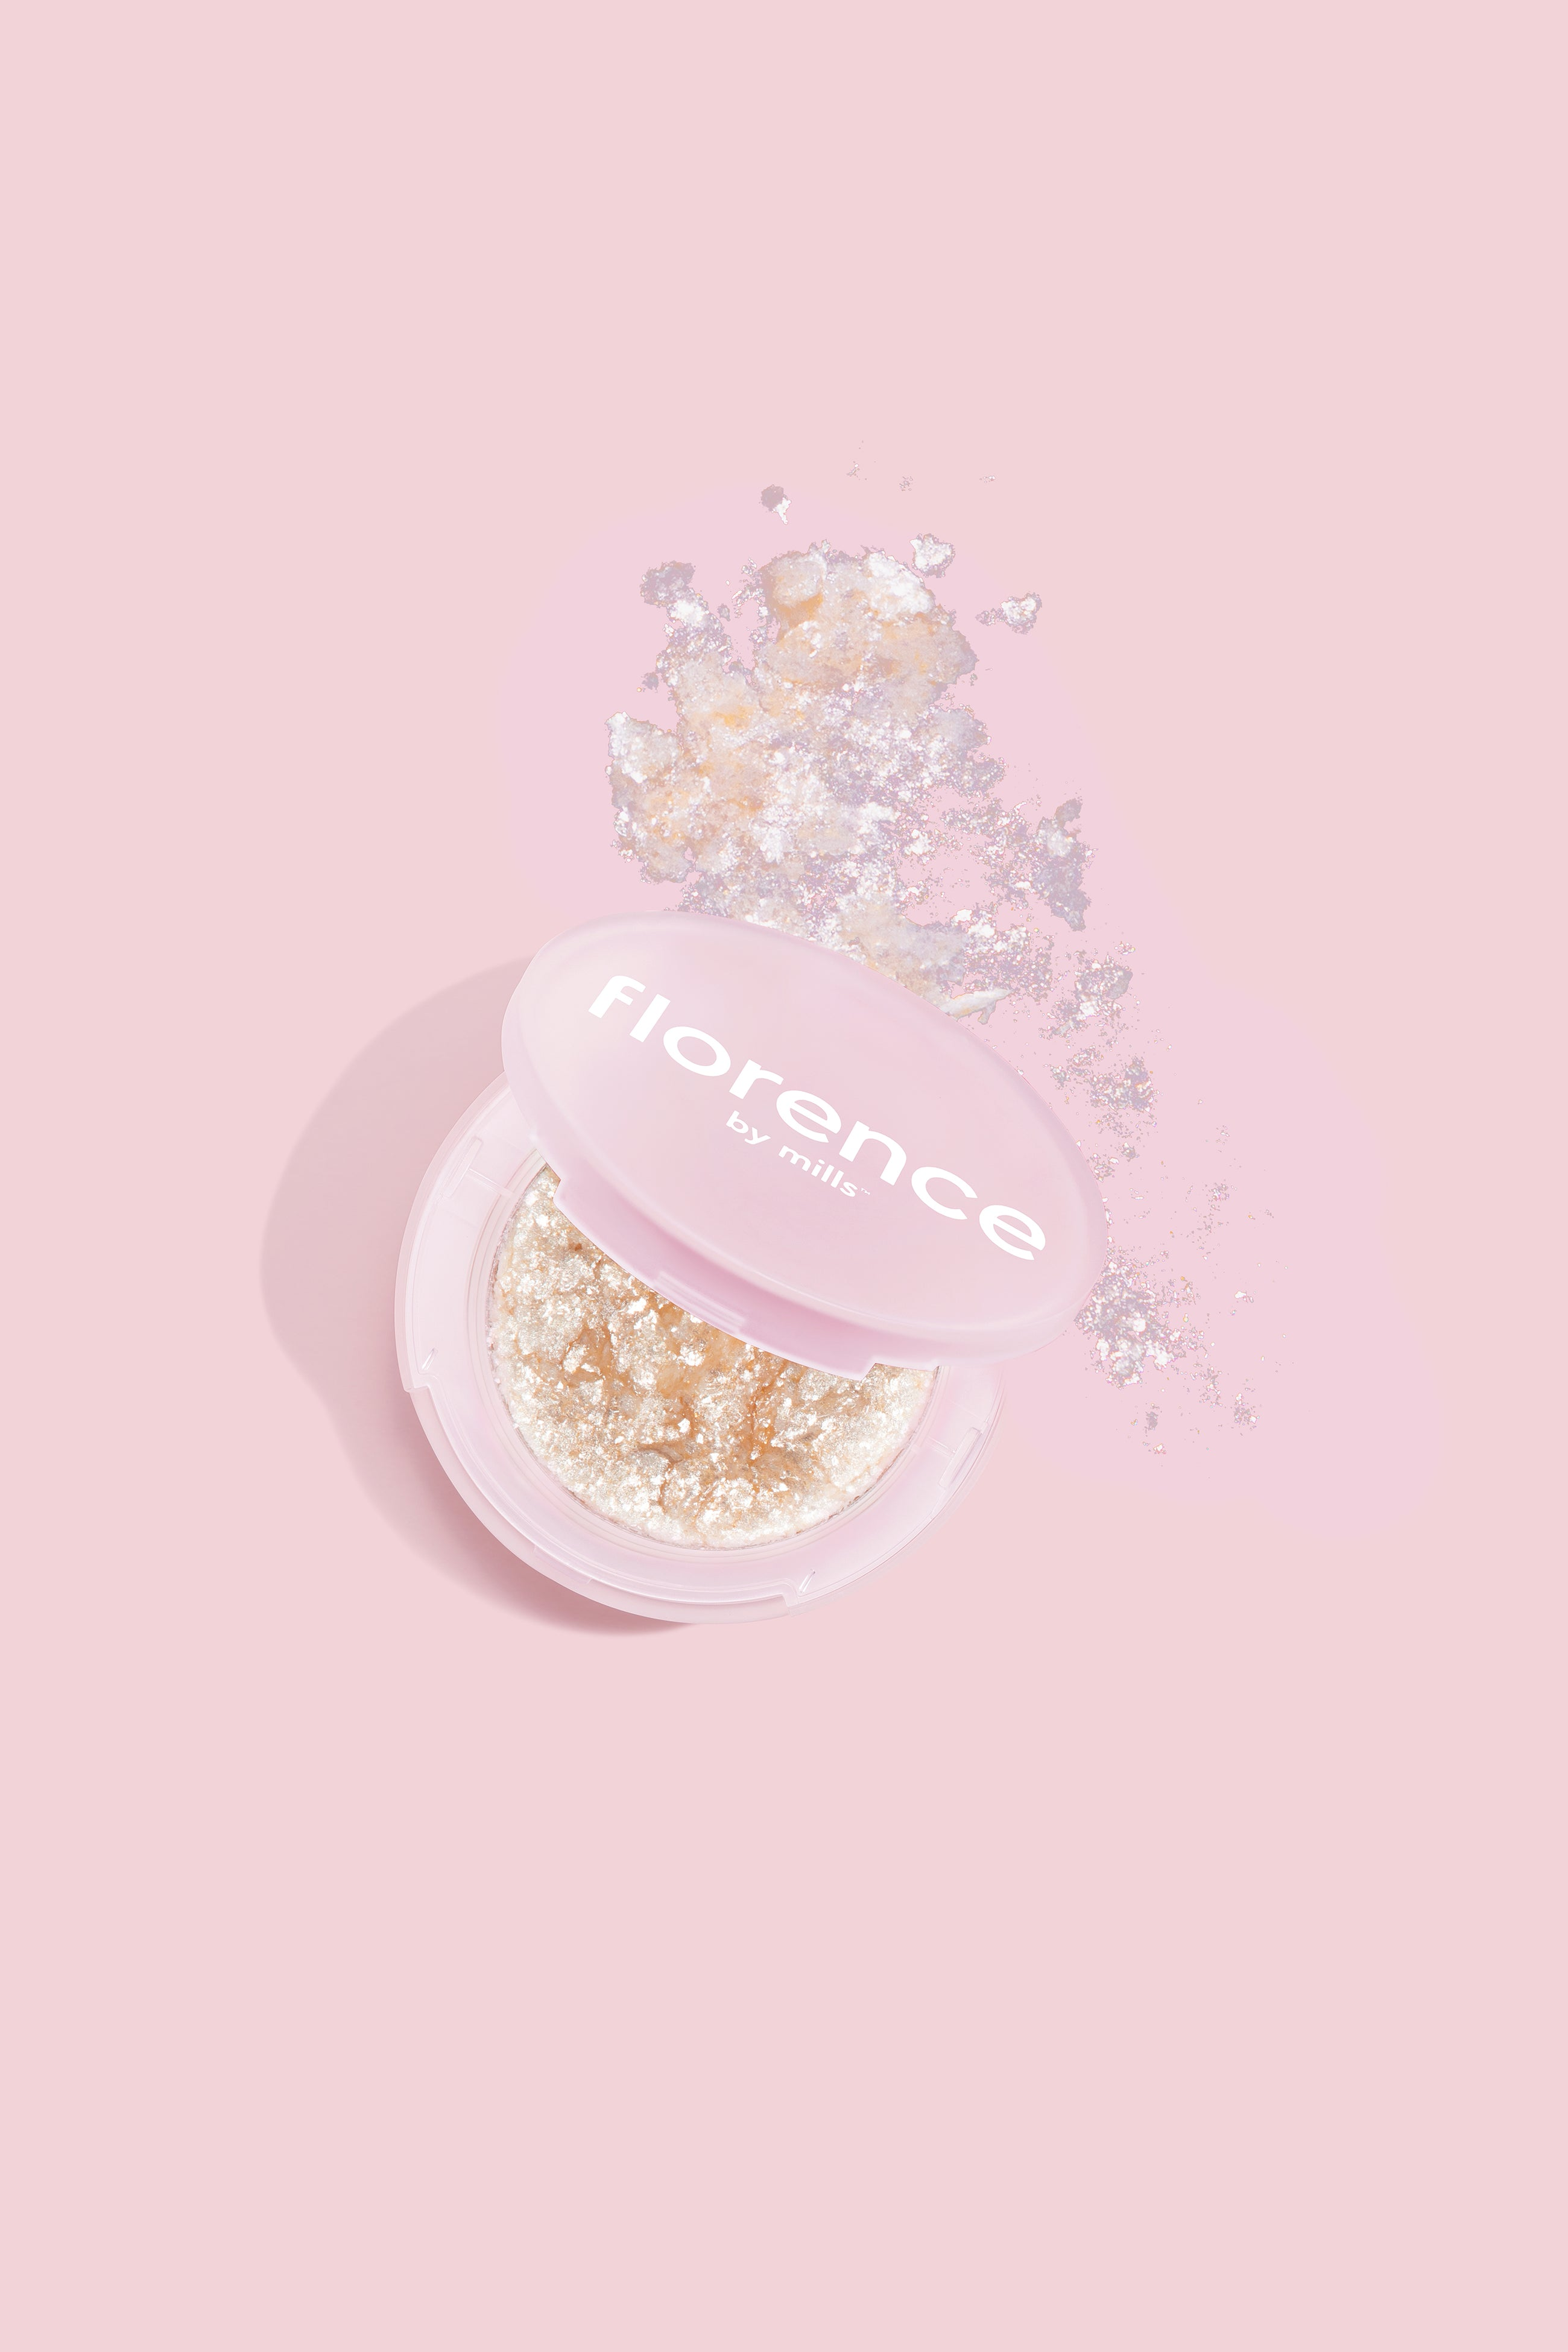 Florence by Mills - Get Your Glow On Face and Body Glitter